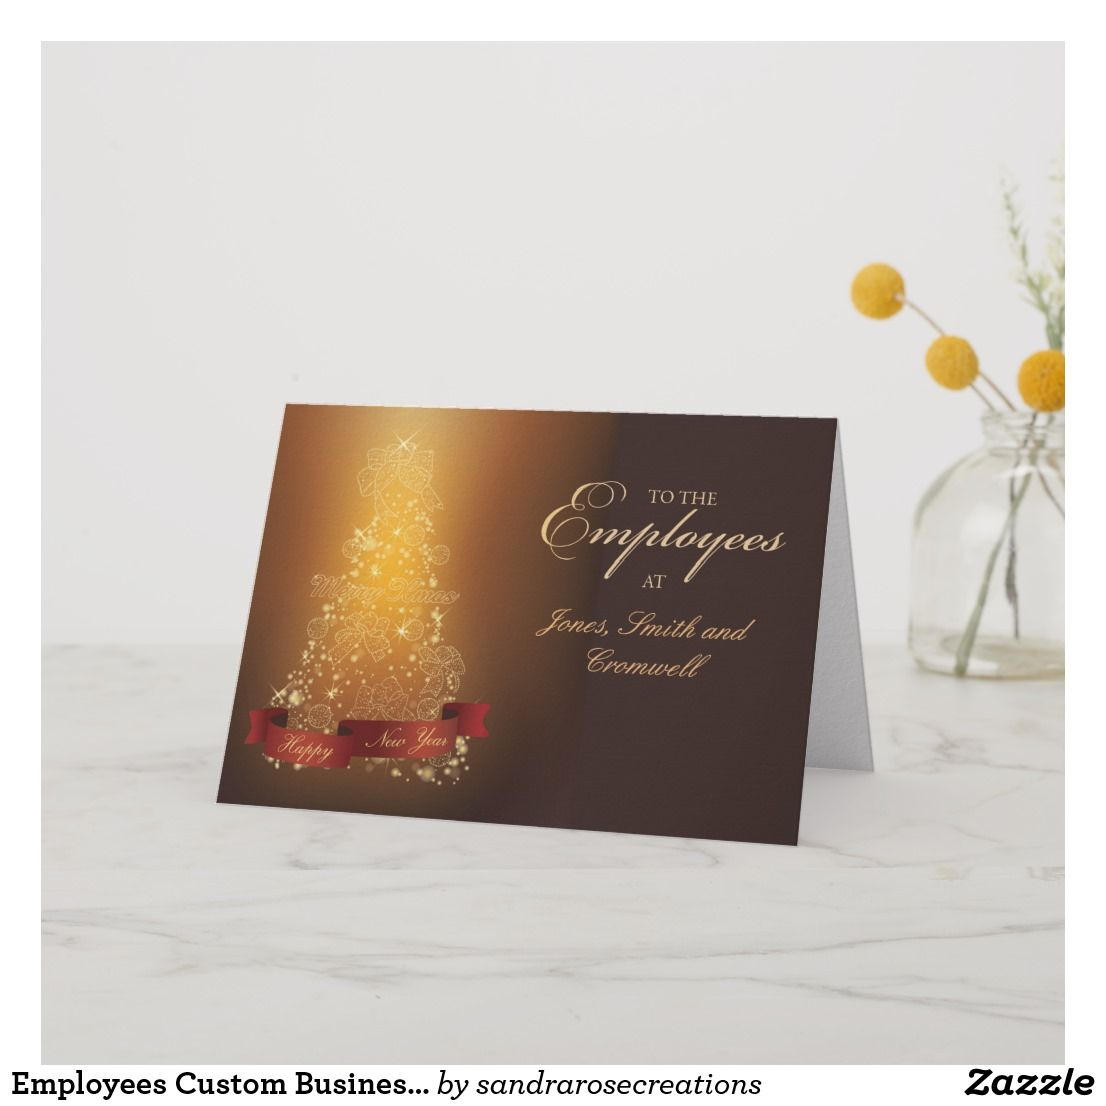 Employees Custom Business Thank You at Christmas Card